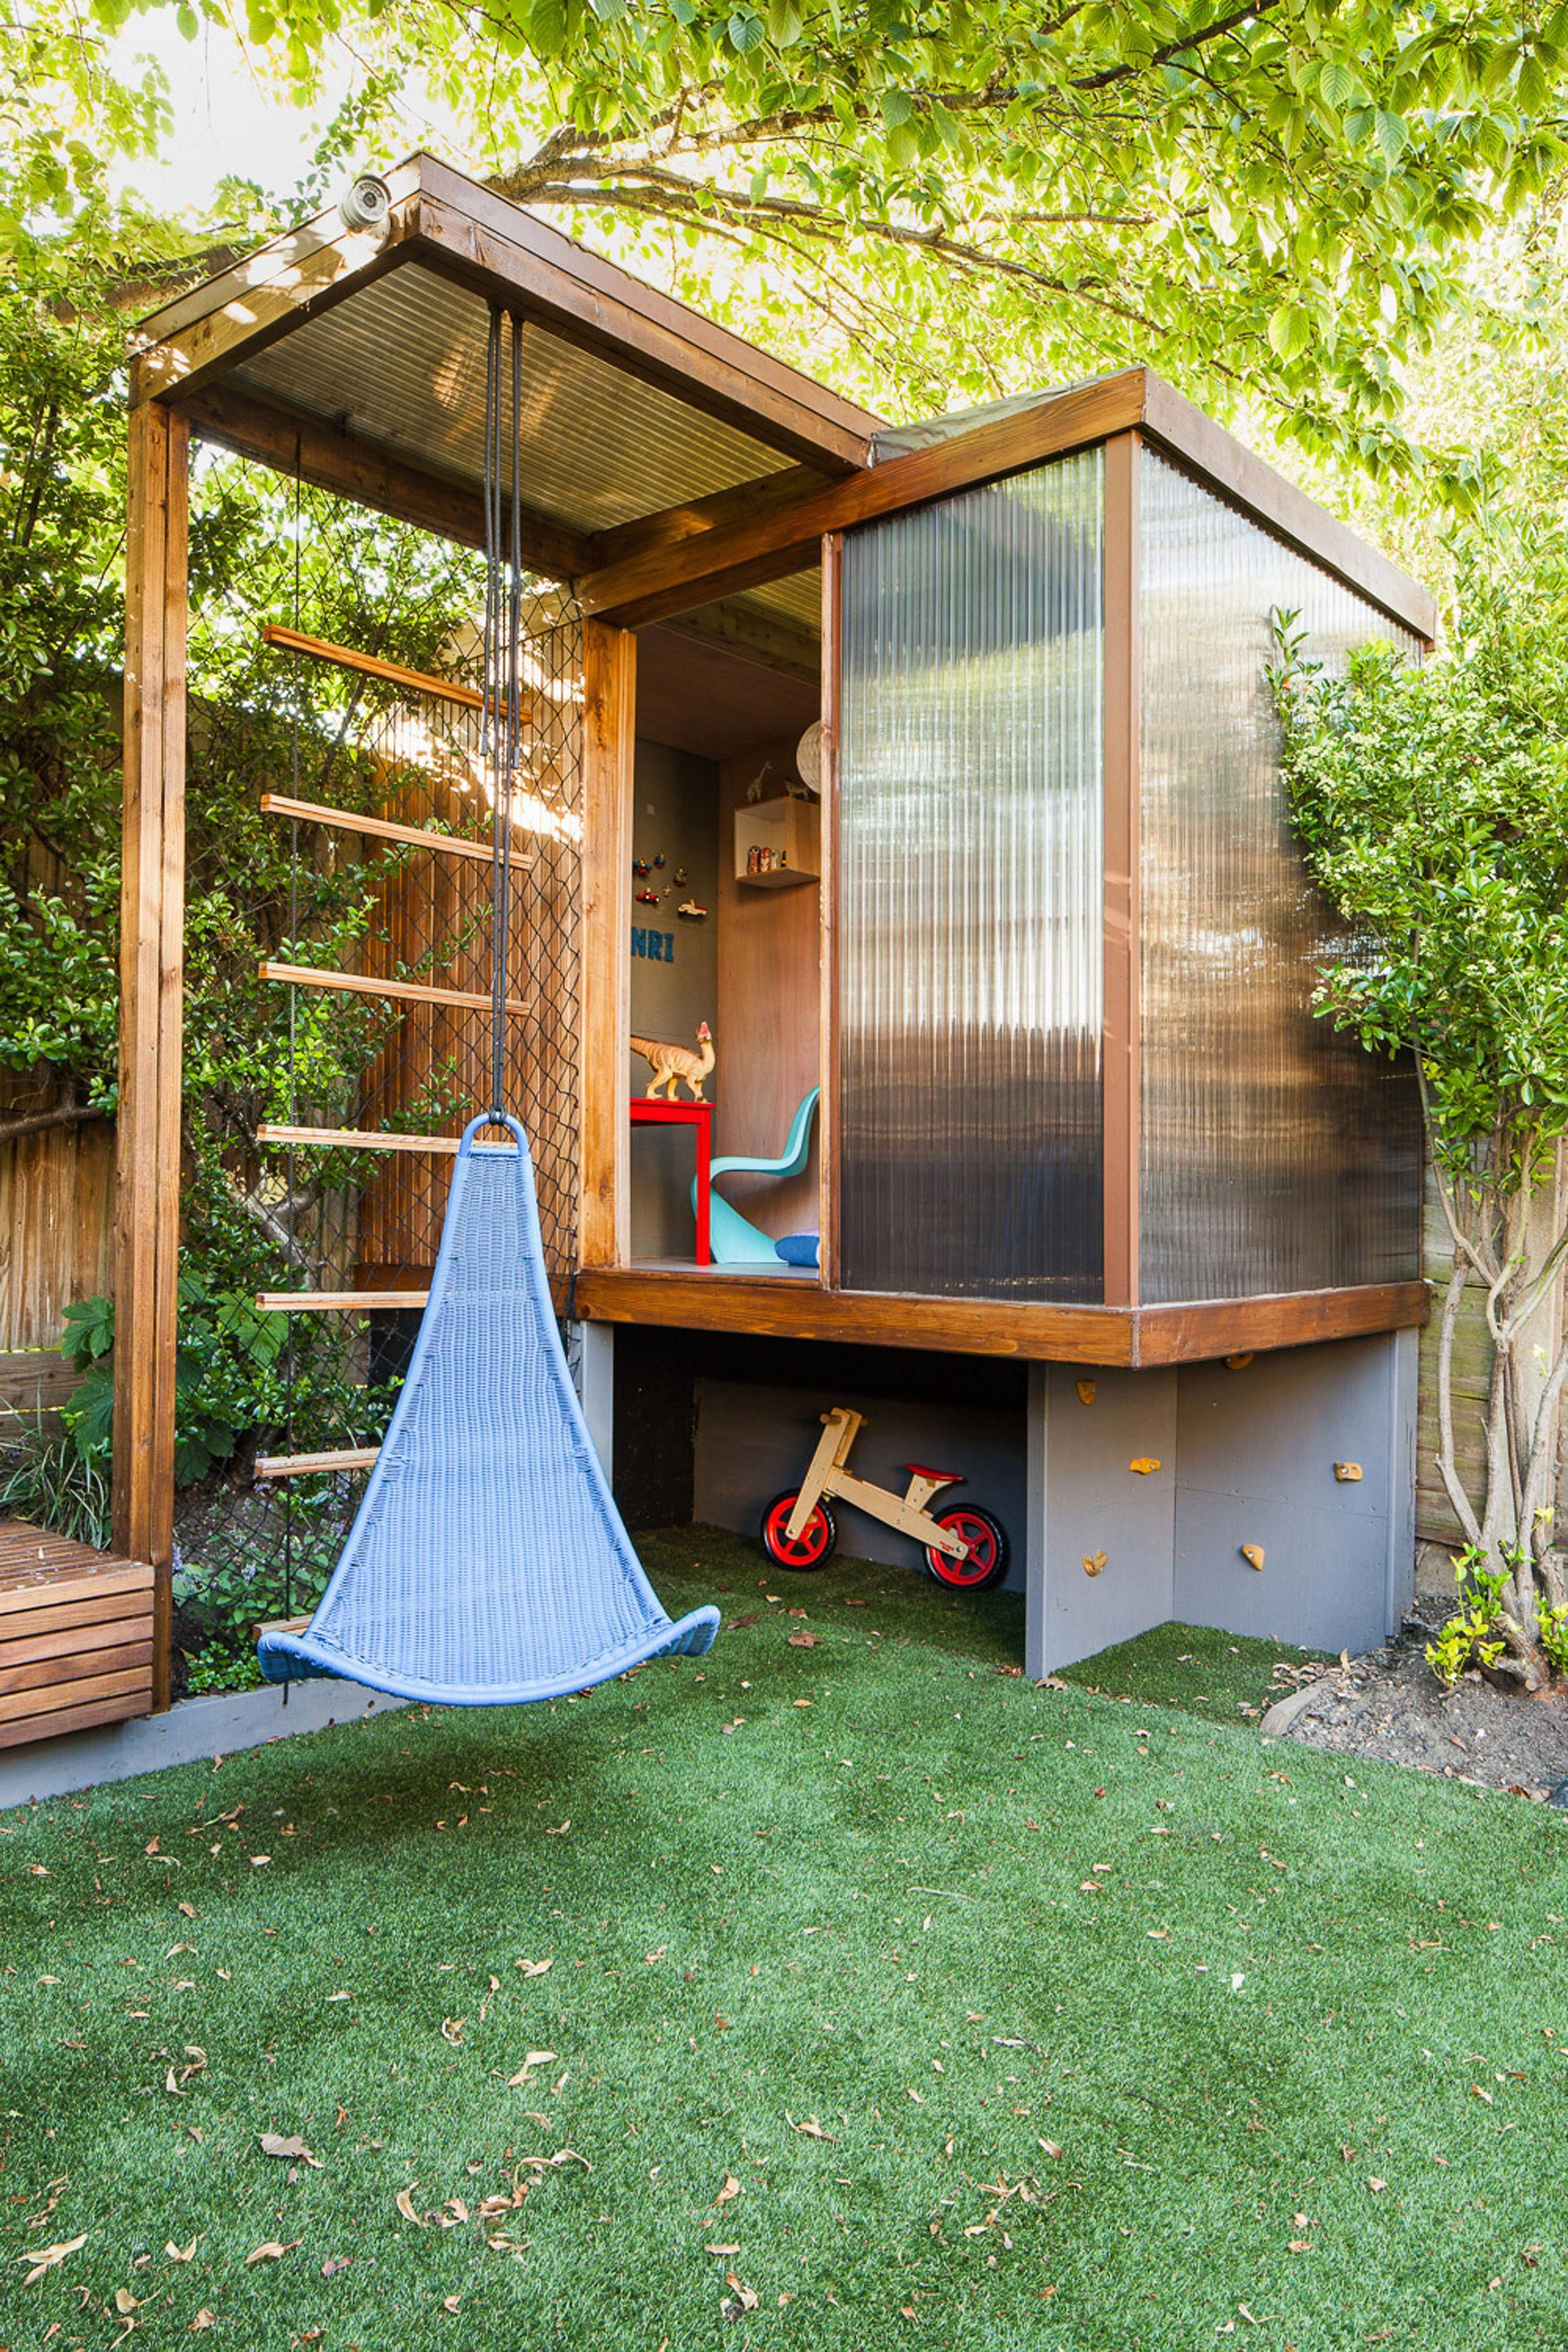 Architect Henri Bredenkamp Has Overhauled A Victorian House Once Used As A Teaching Space By Goldsmiths University Backyard Play Backyard For Kids Play Houses